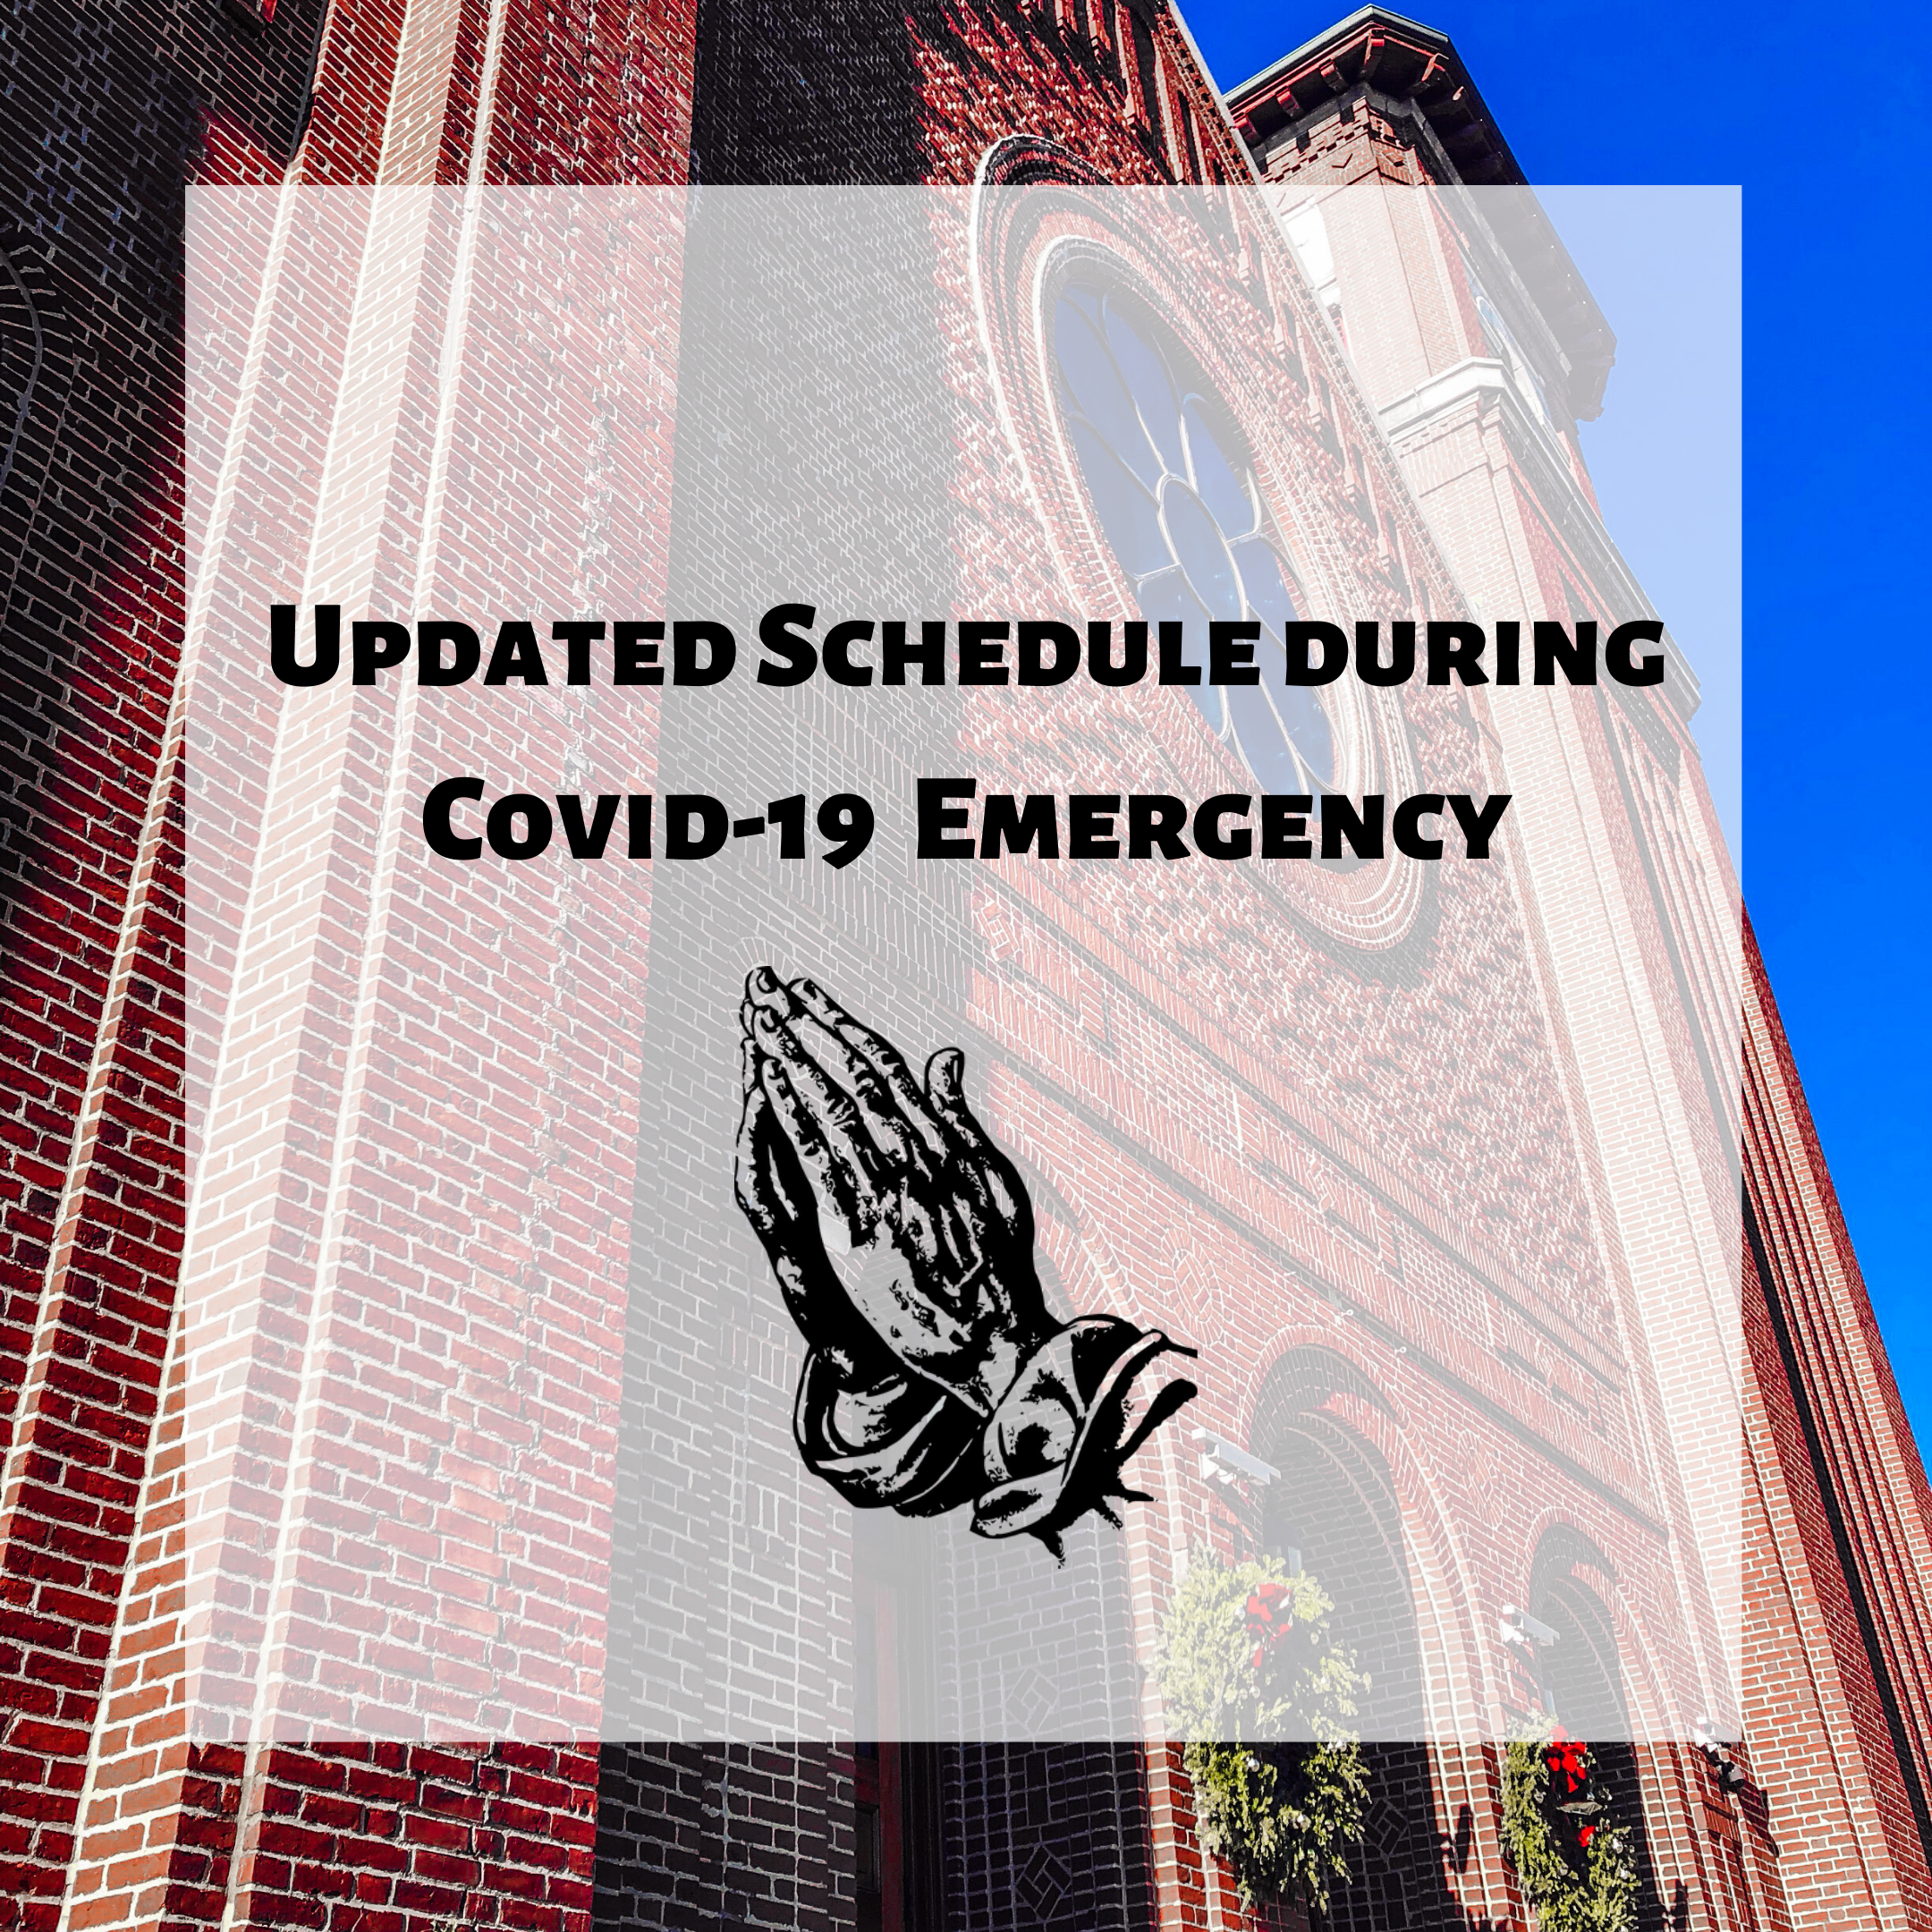 Schedule During Covid-19 Outbreak